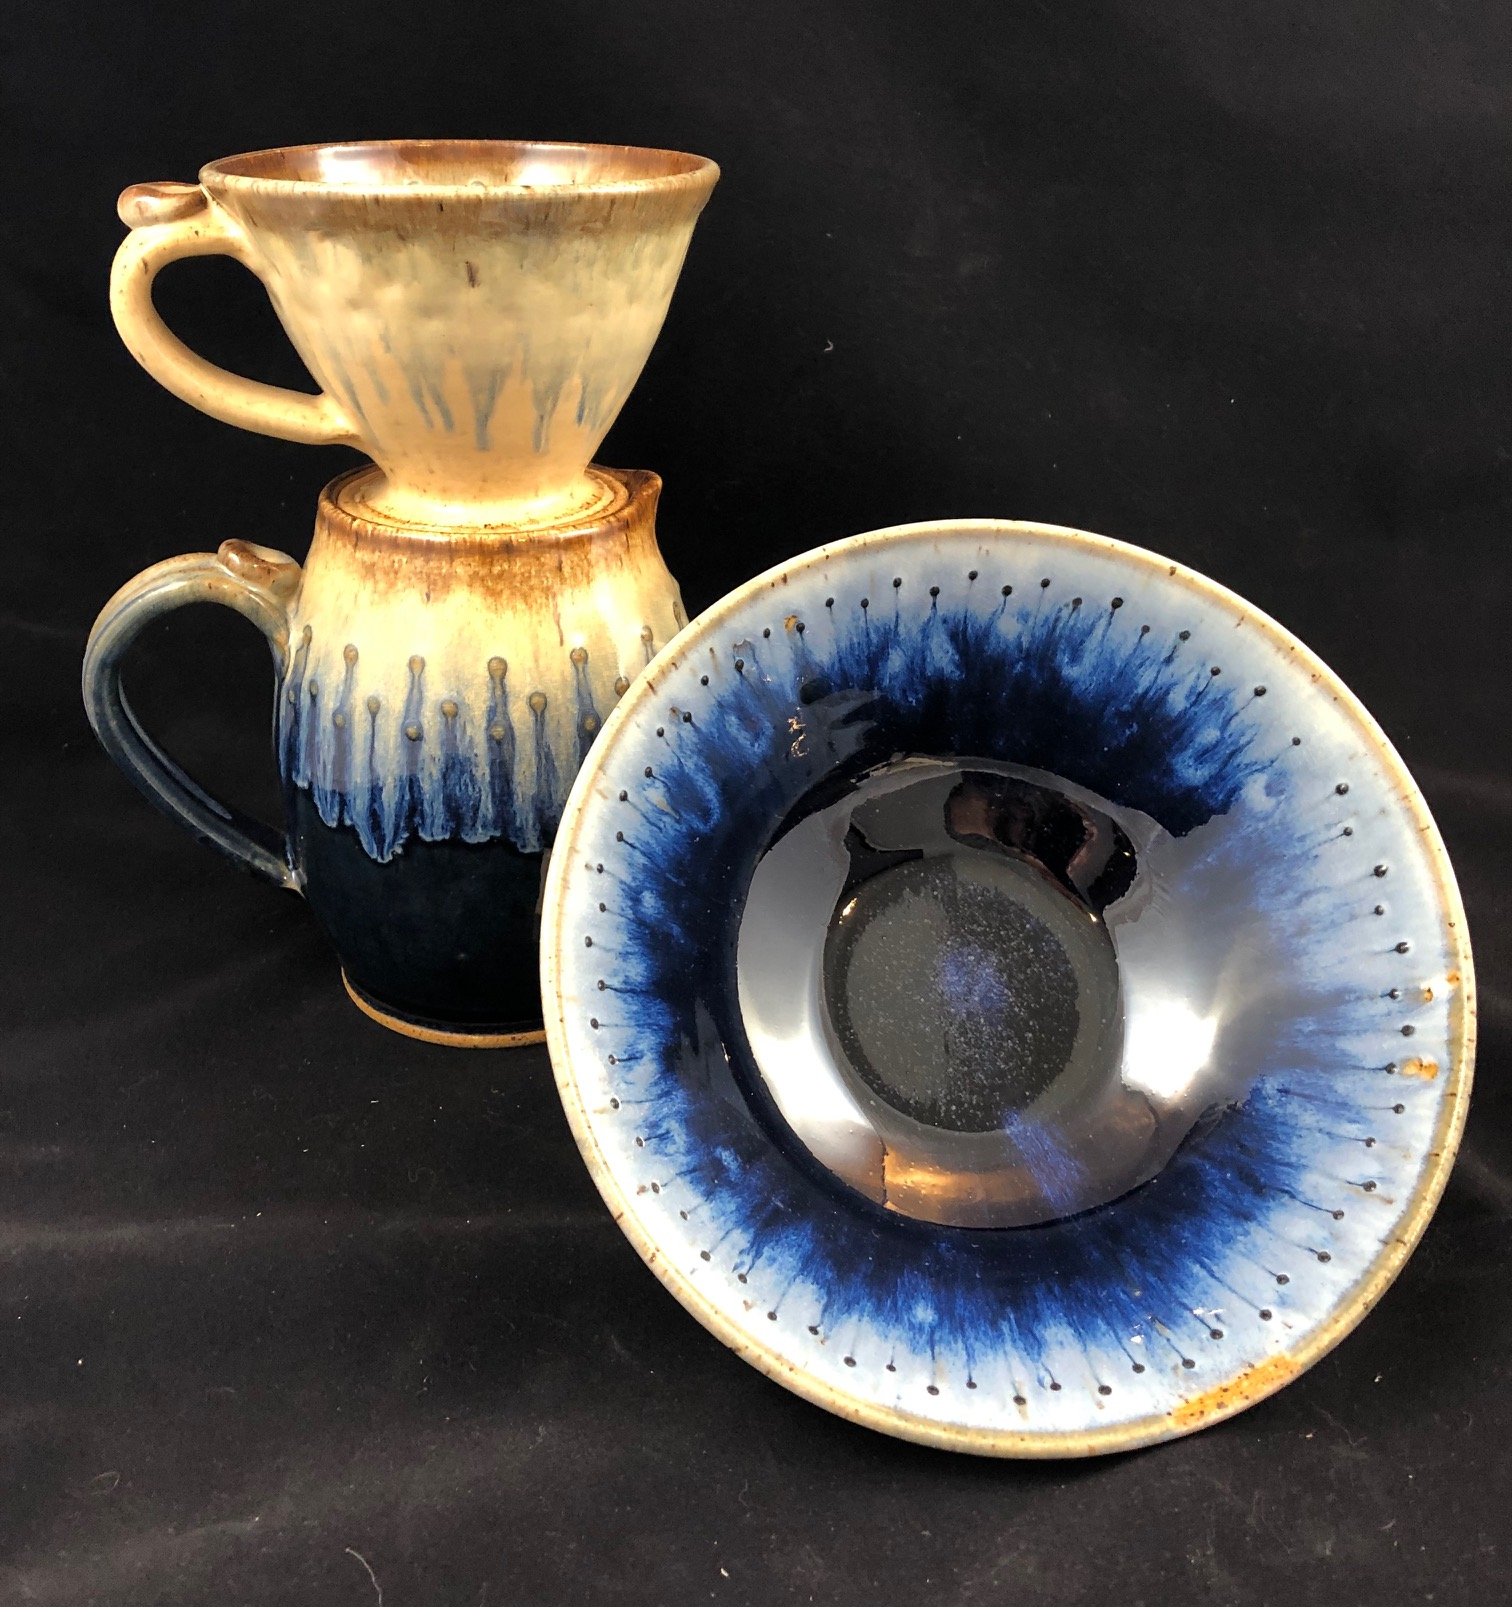 Mary anderson &Leslie Howland - Functional Stoneware Potterypotter@ptd.net